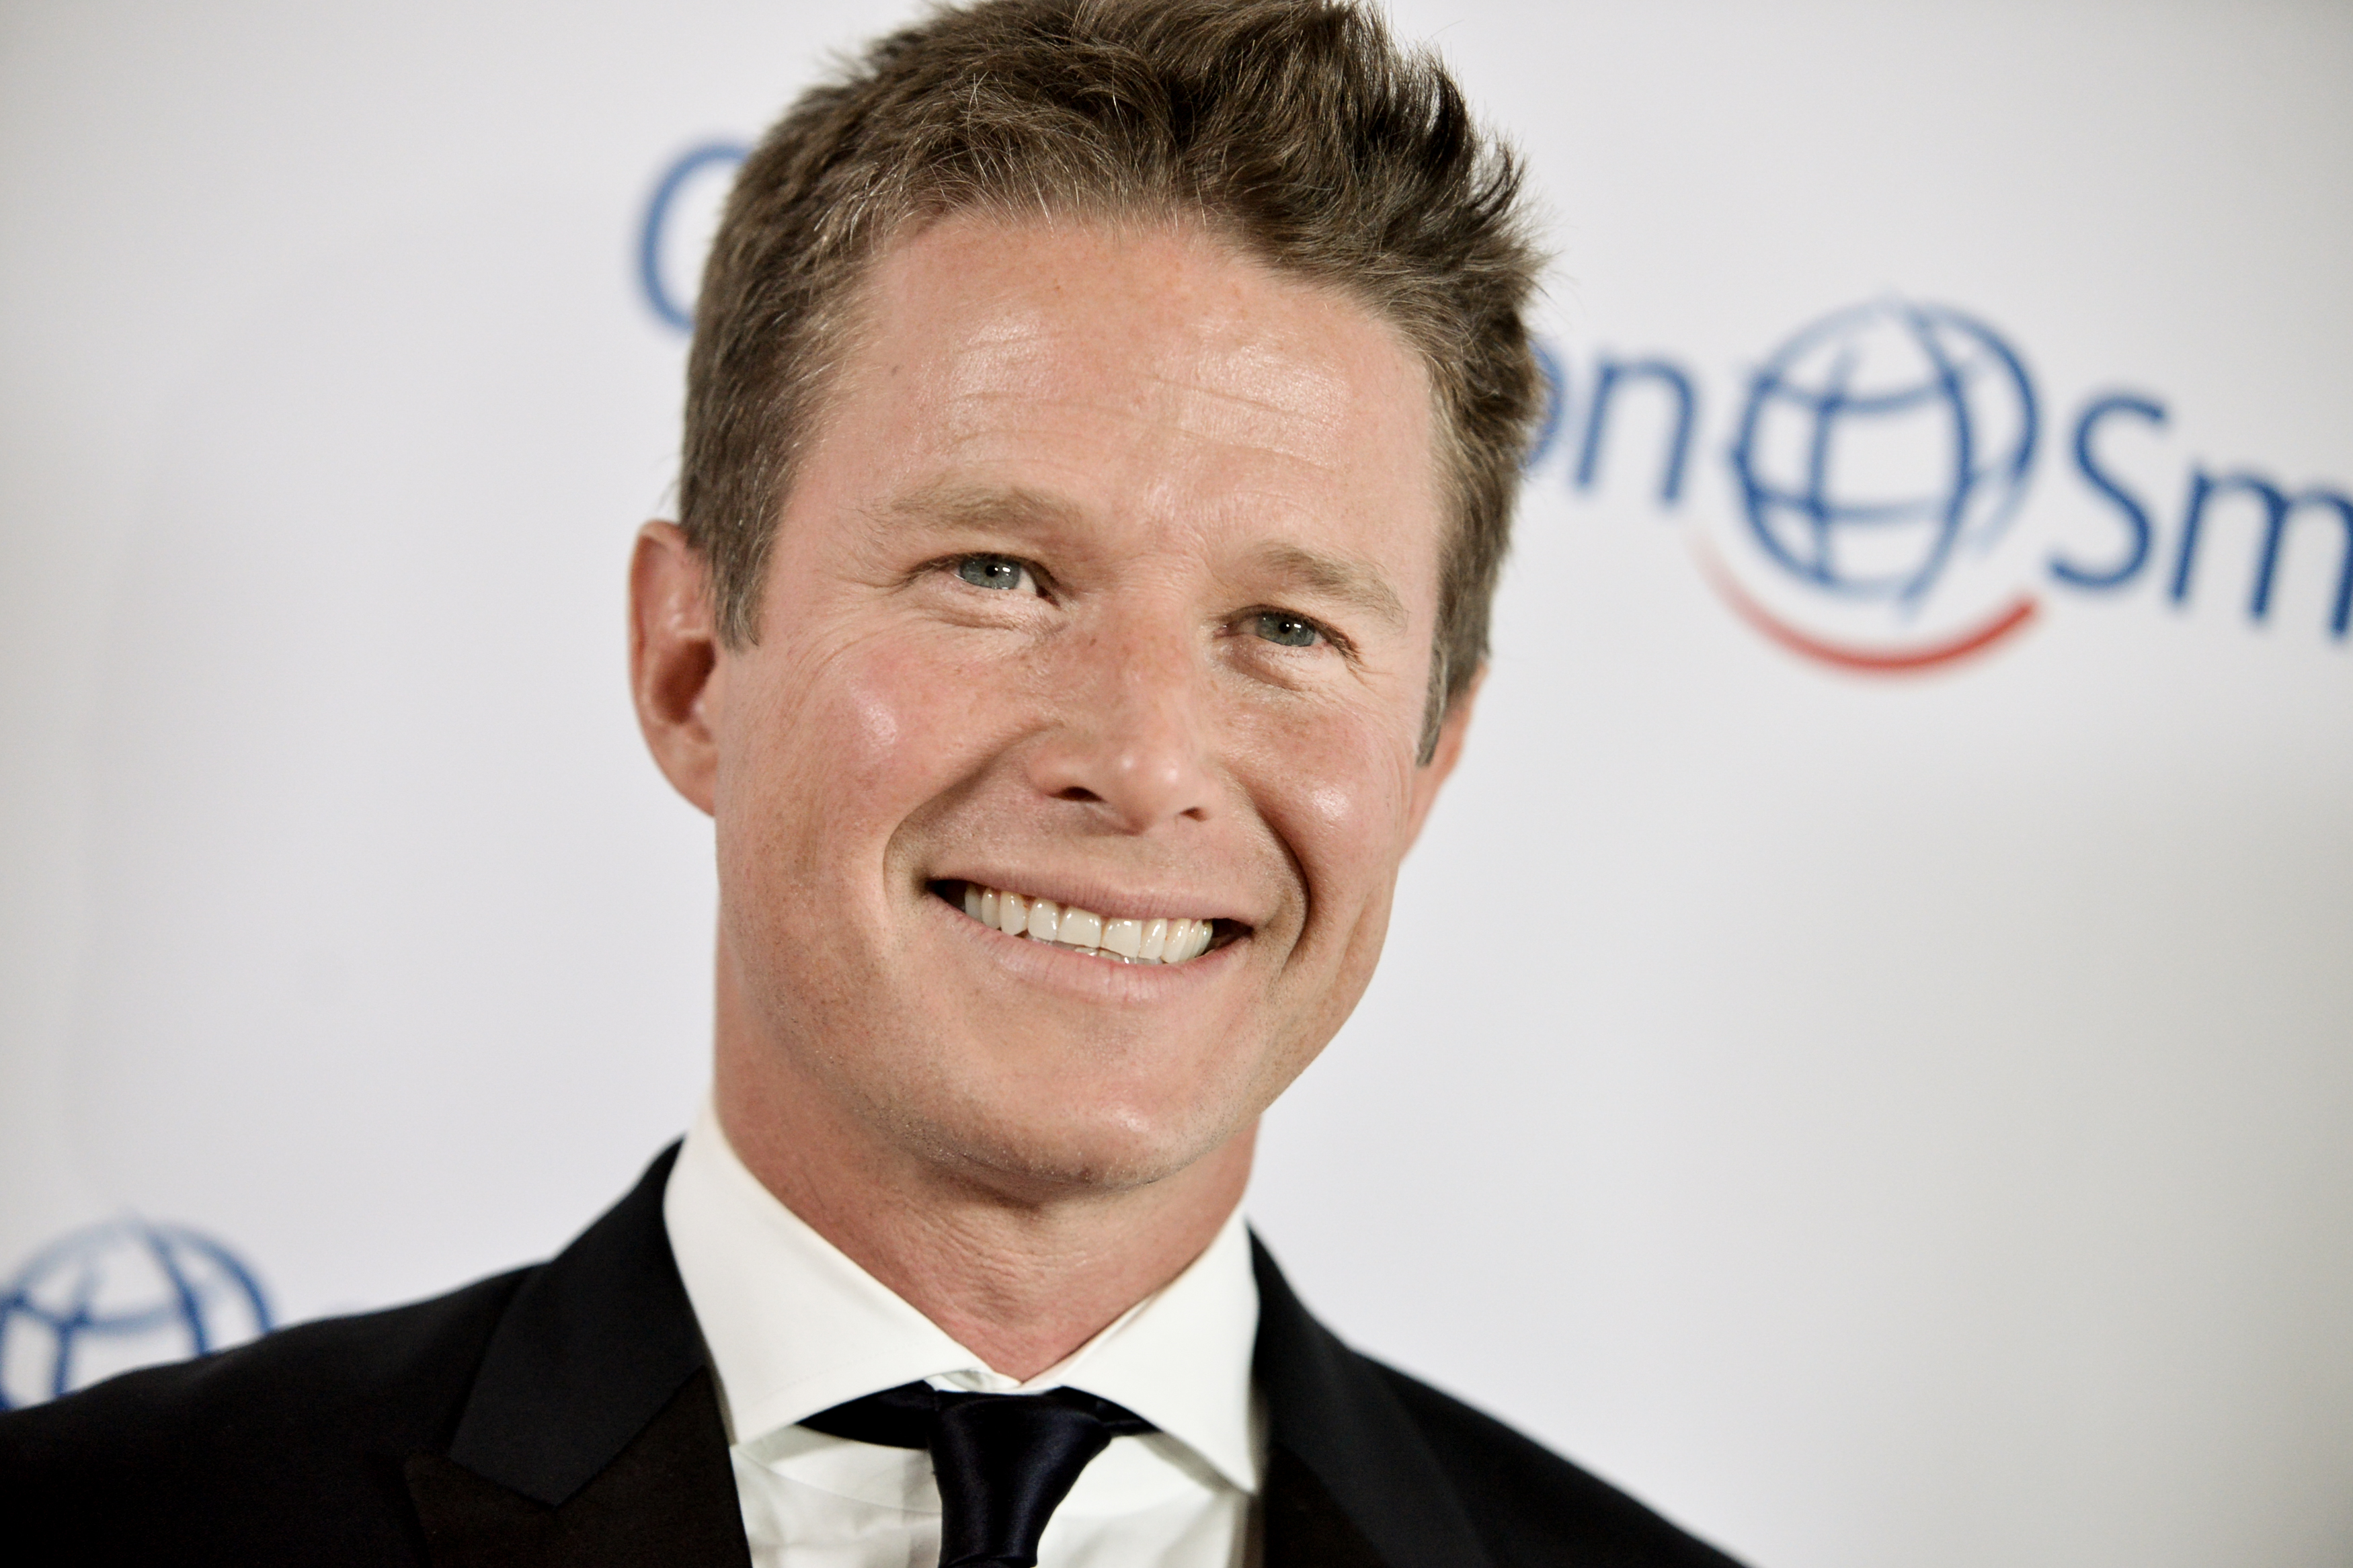 https://i0.wp.com/media.washtimes.com.s3.amazonaws.com/media/image/2016/10/09/BillyBush.jpg